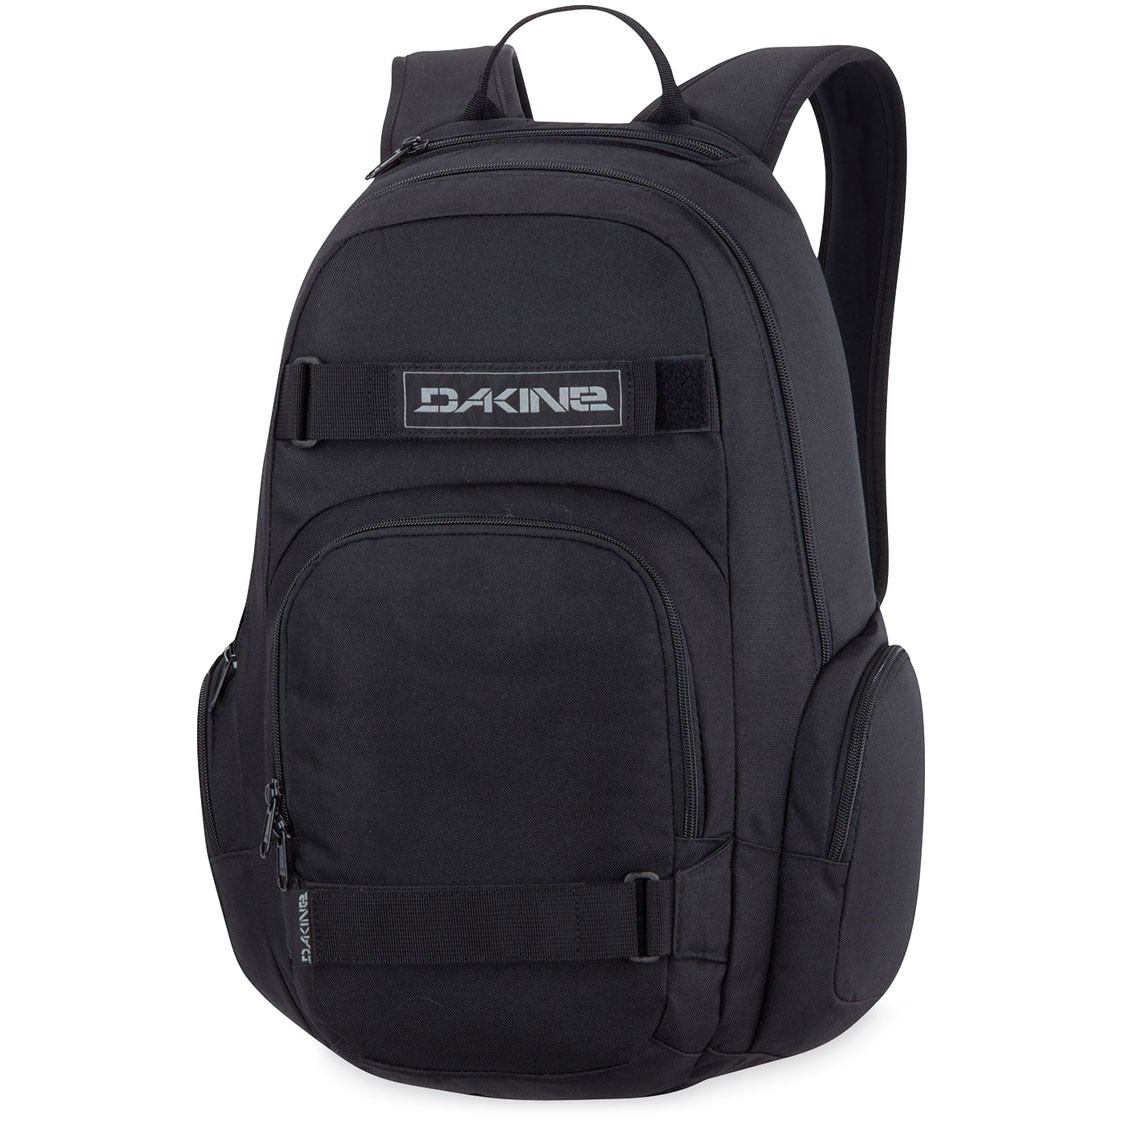 Dakine Atlas 25L Backpack - Black